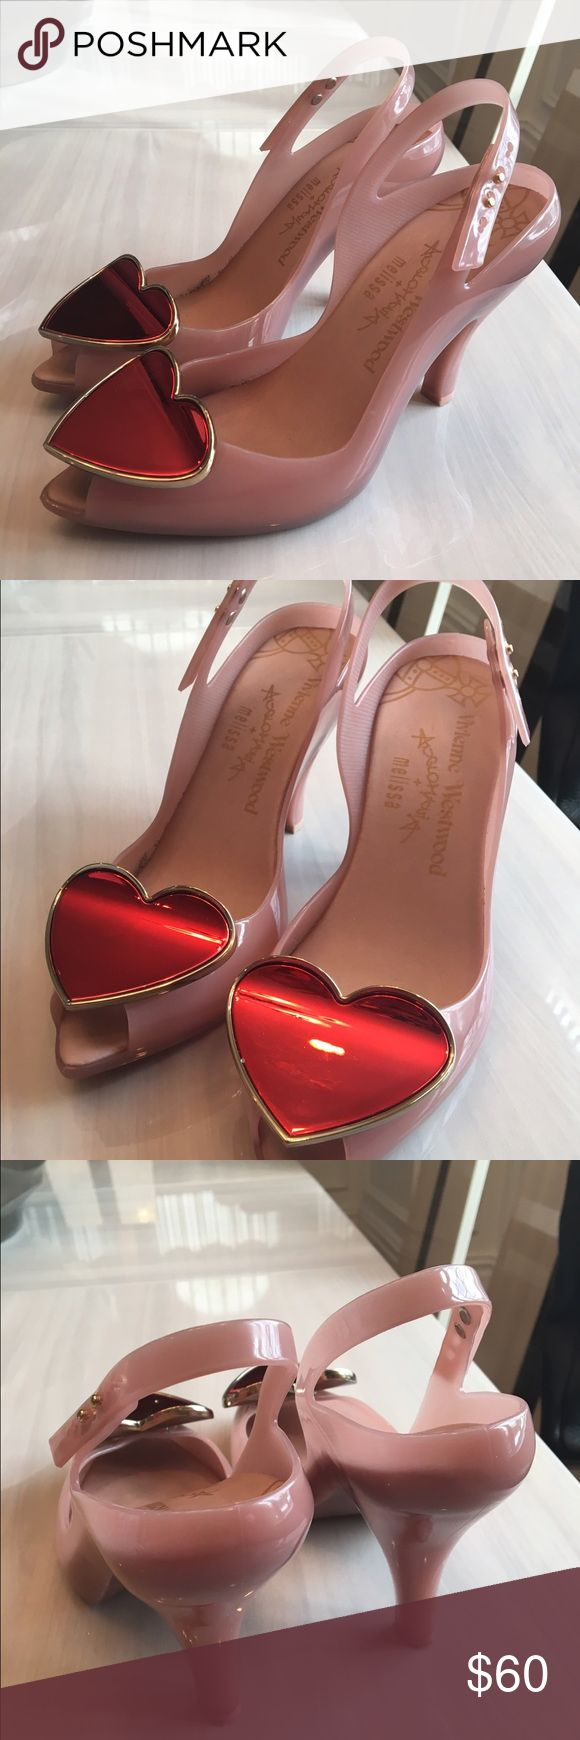 "Vivienne Westwood Anglomania Melissa Heel Pump Blush Pink PreOwned Heels. Synthetic sole. Very little sign of wear. Good condition.  Heel measures approximately 4"" Platform measures approximately 1"" Vivienne Westwood Shoes Heels"